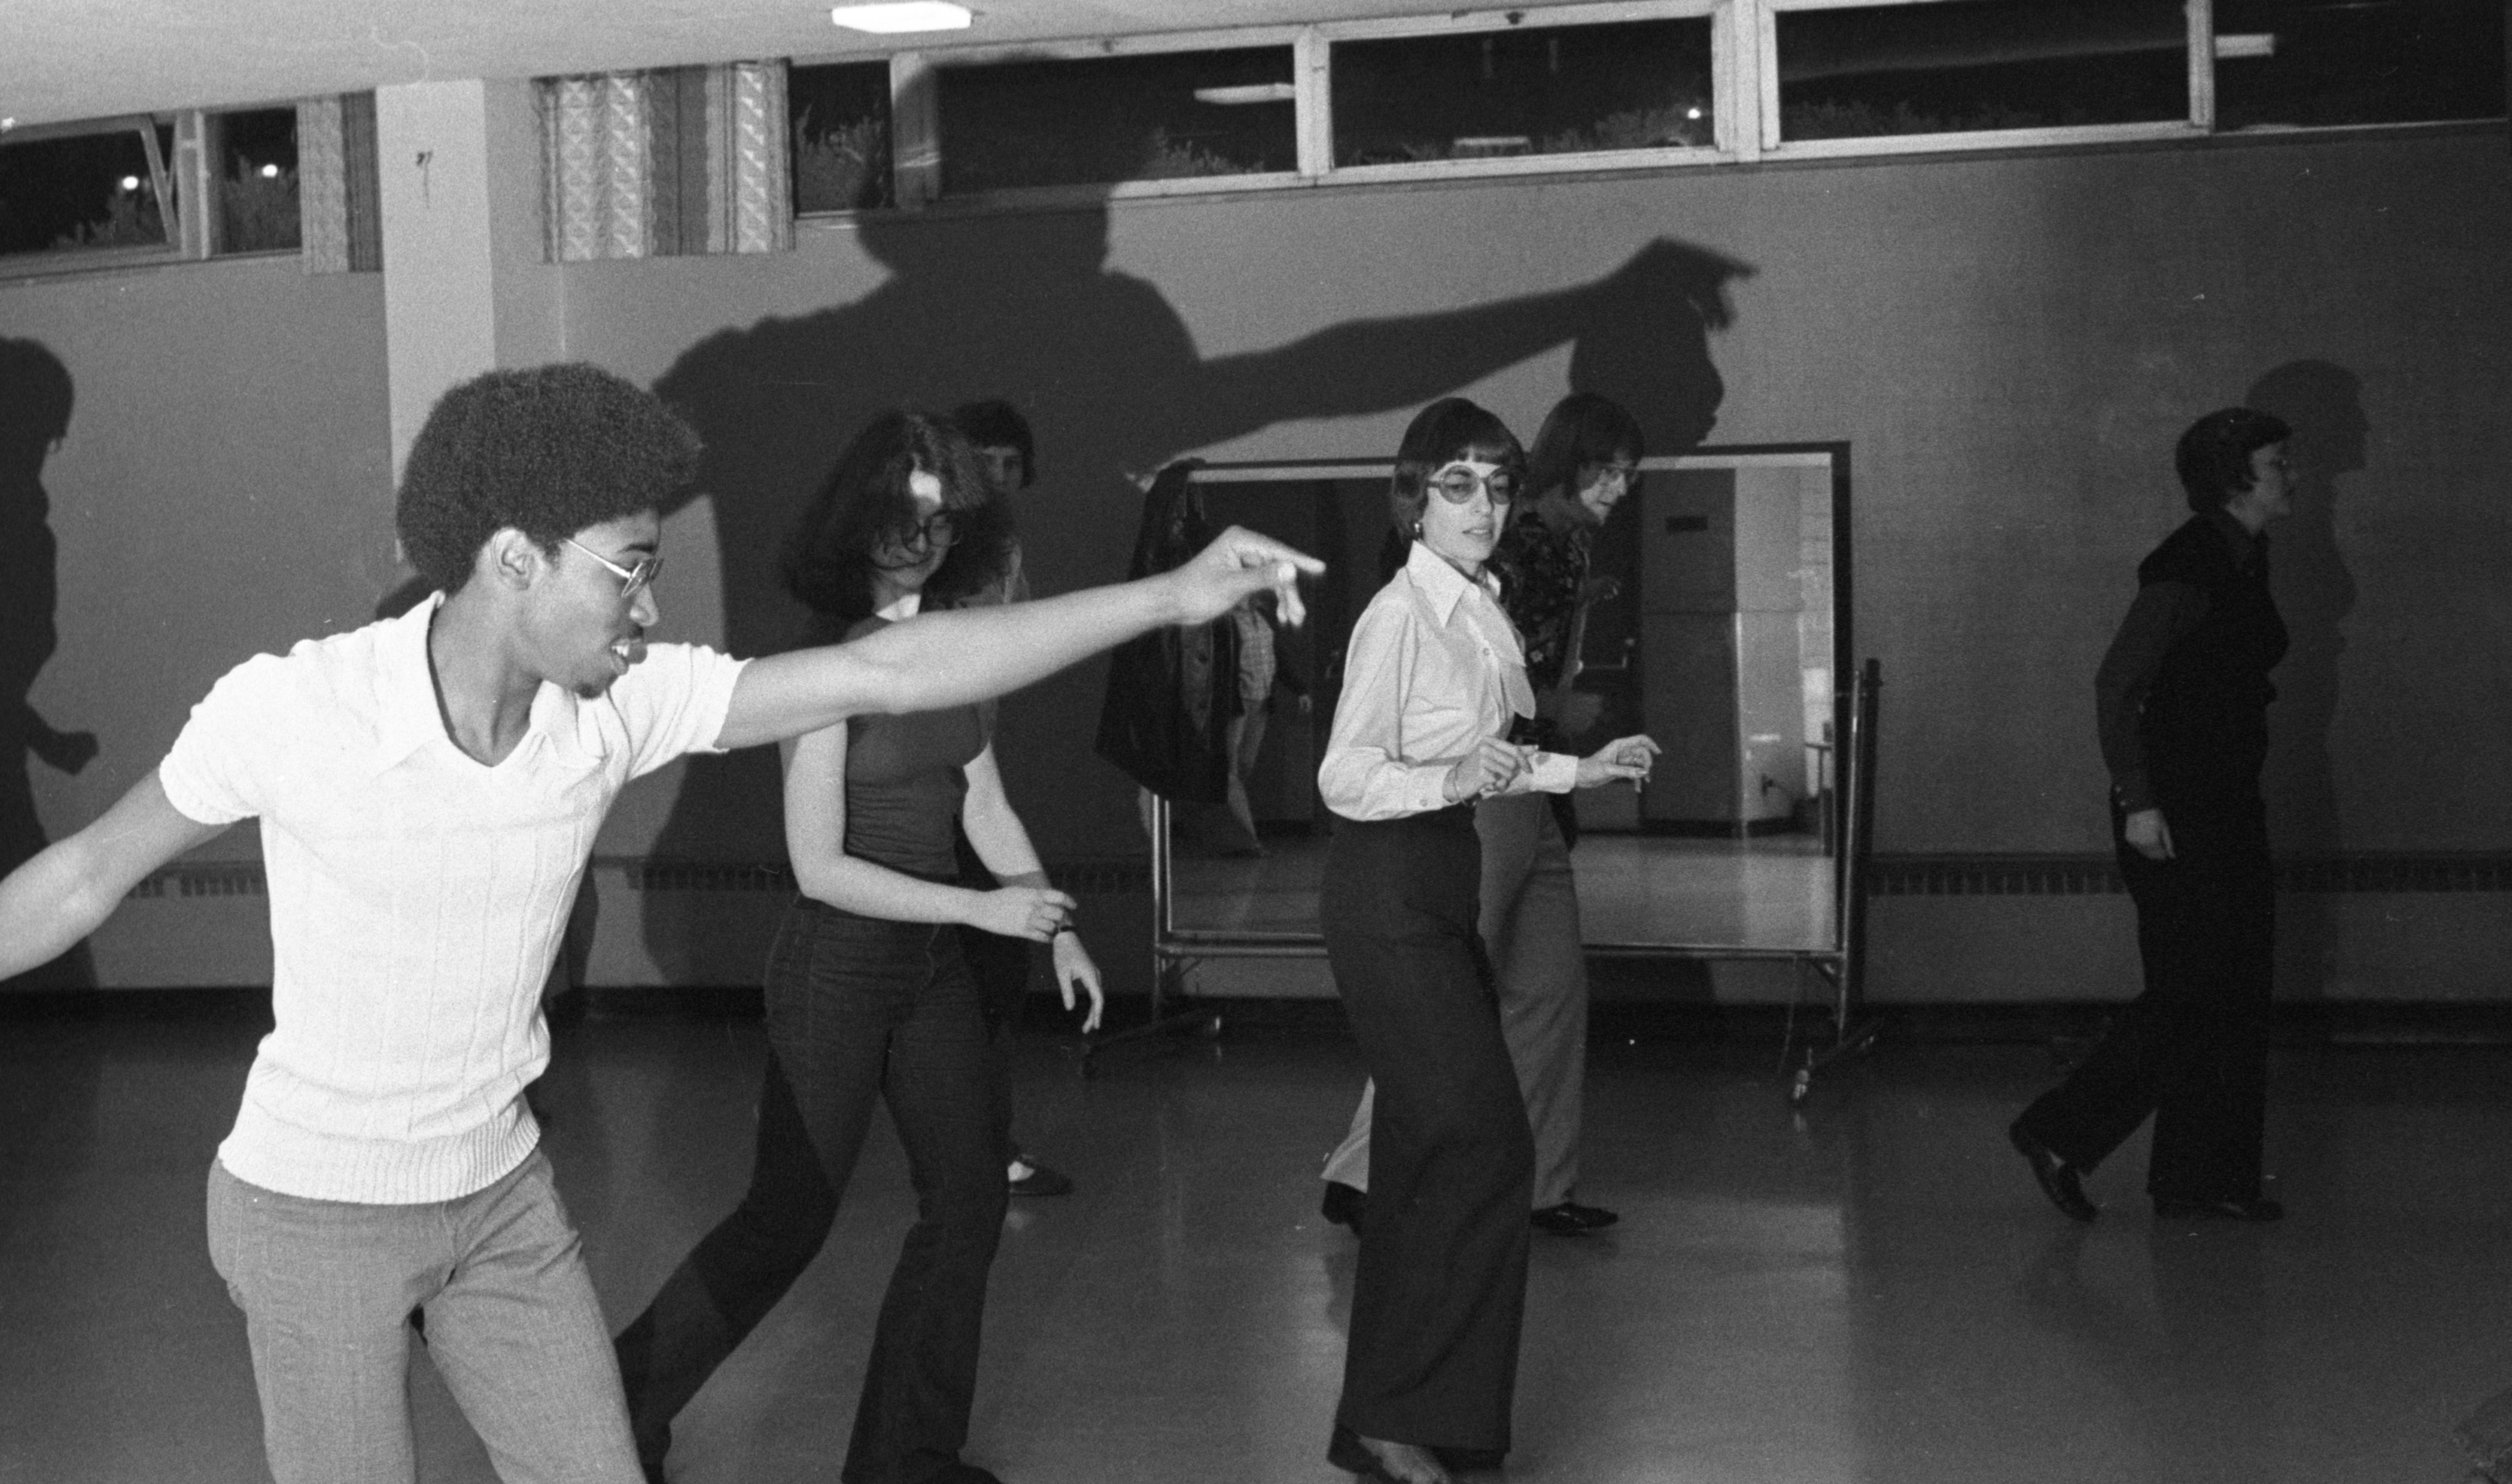 Dorian Deaver Leads A Disco Class At The Ann Arbor Y, November 1976 image